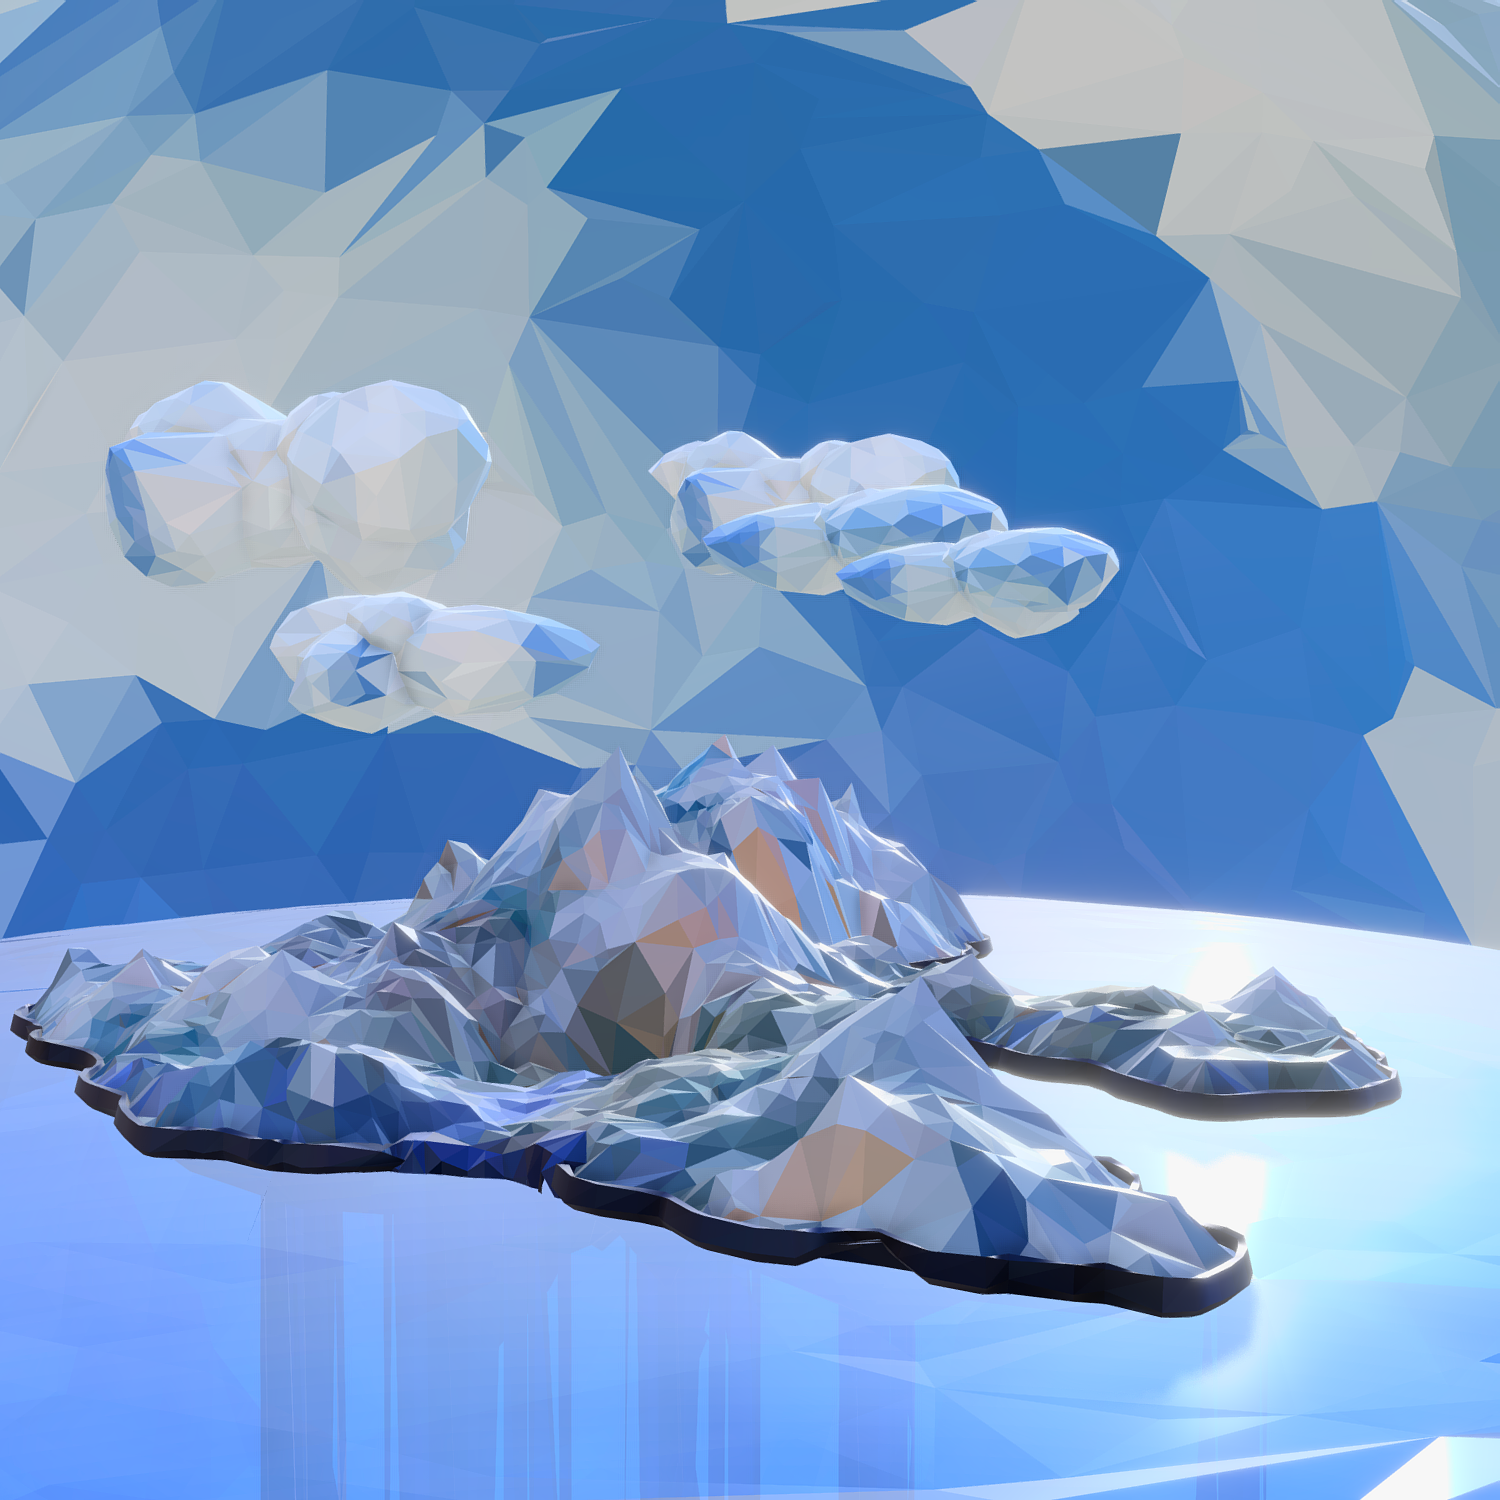 low polygon art snow island mountain waterfall 3d model 3ds max fbx ma mb obj 269718